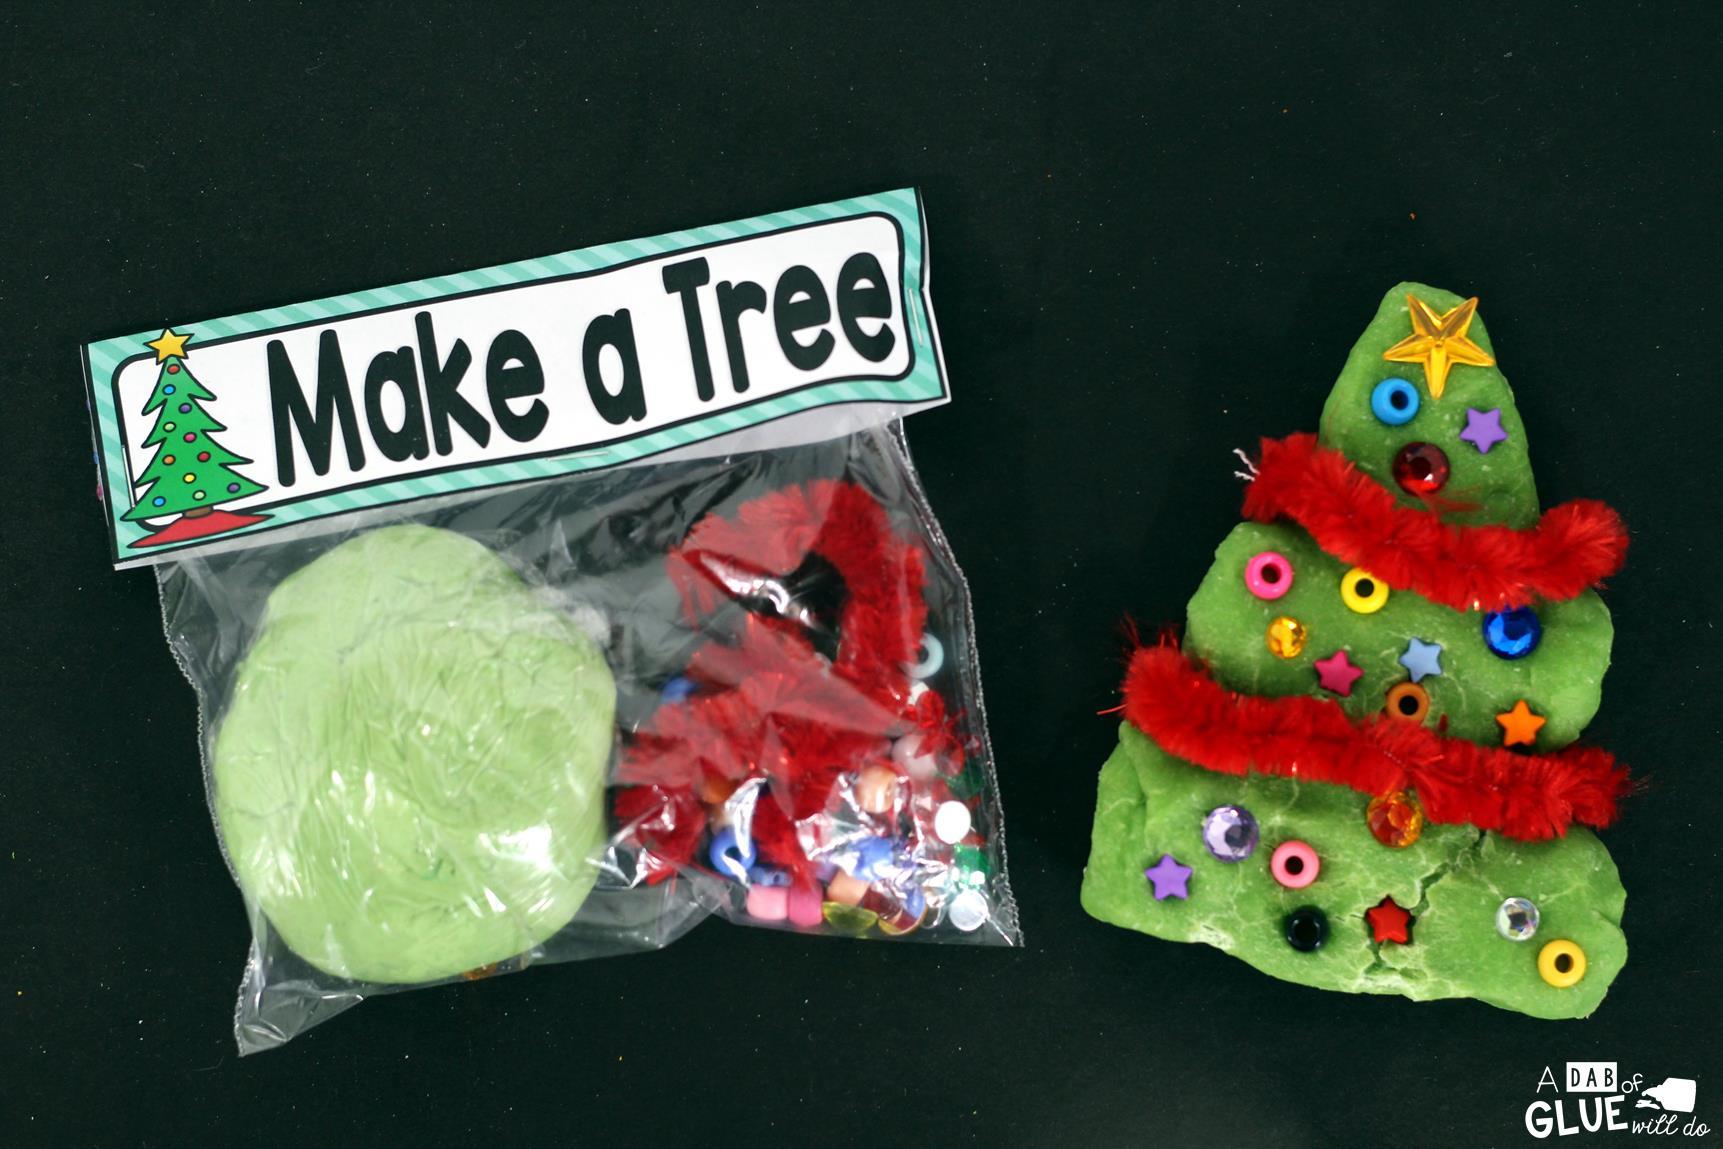 Make a Treeis the perfect STEMChristmasgift. This activity is great for toddlers, preschoolers, and kindergarten and first grade students.